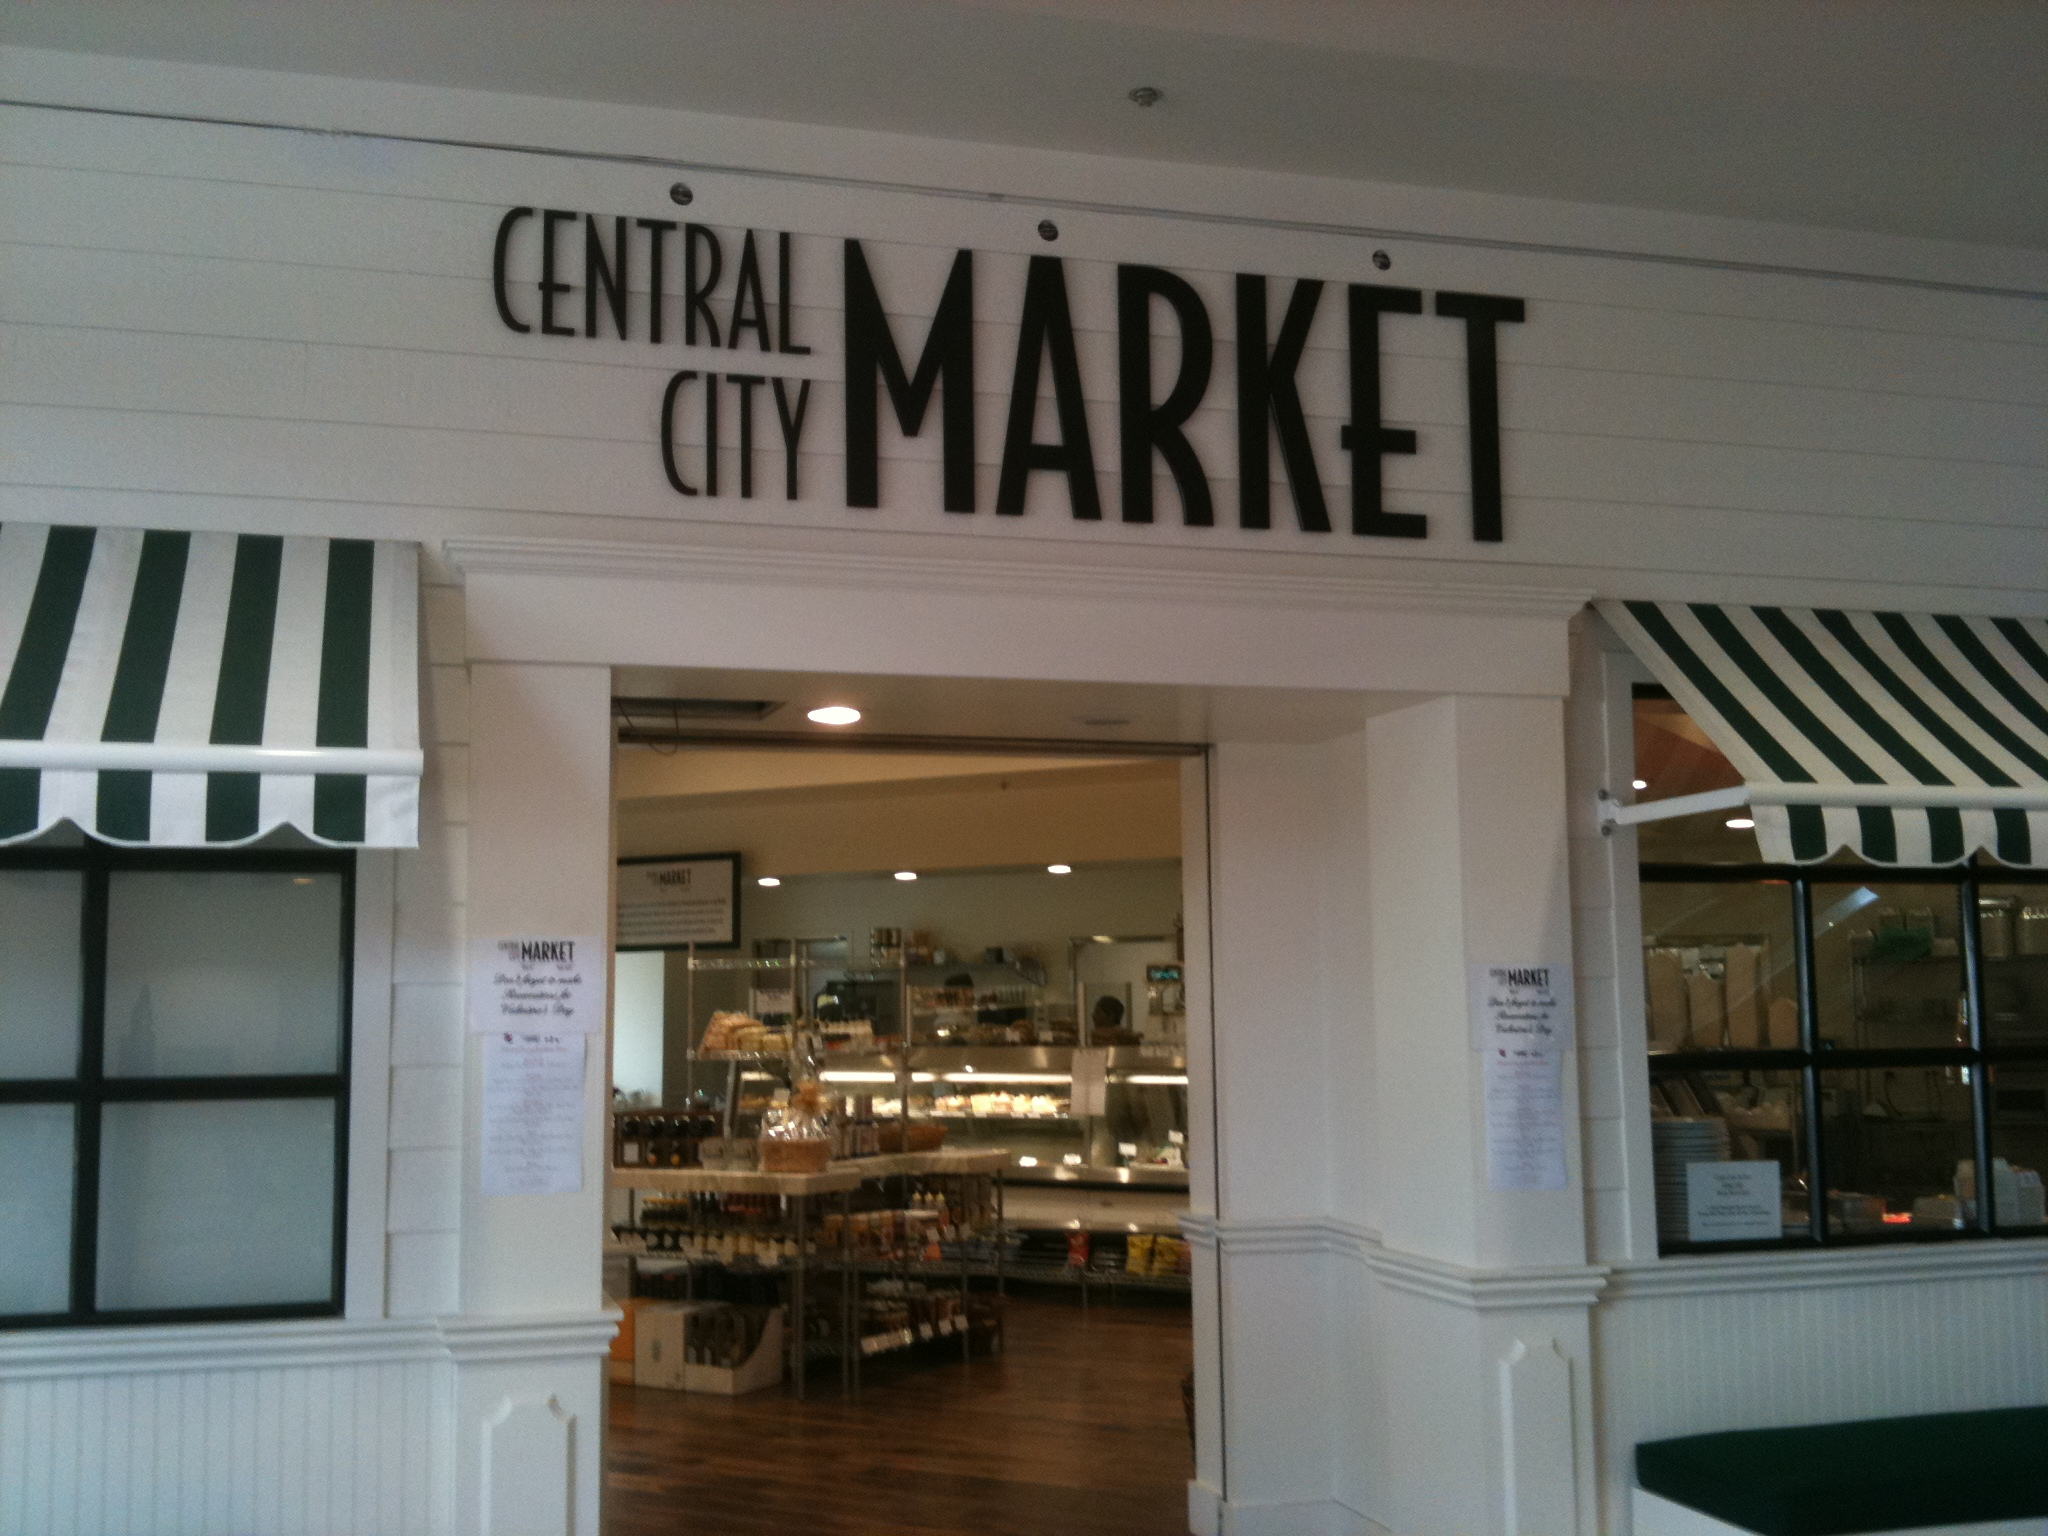 Central City Market – A Welcome Addition to the Santa Maria Restaurant Scene